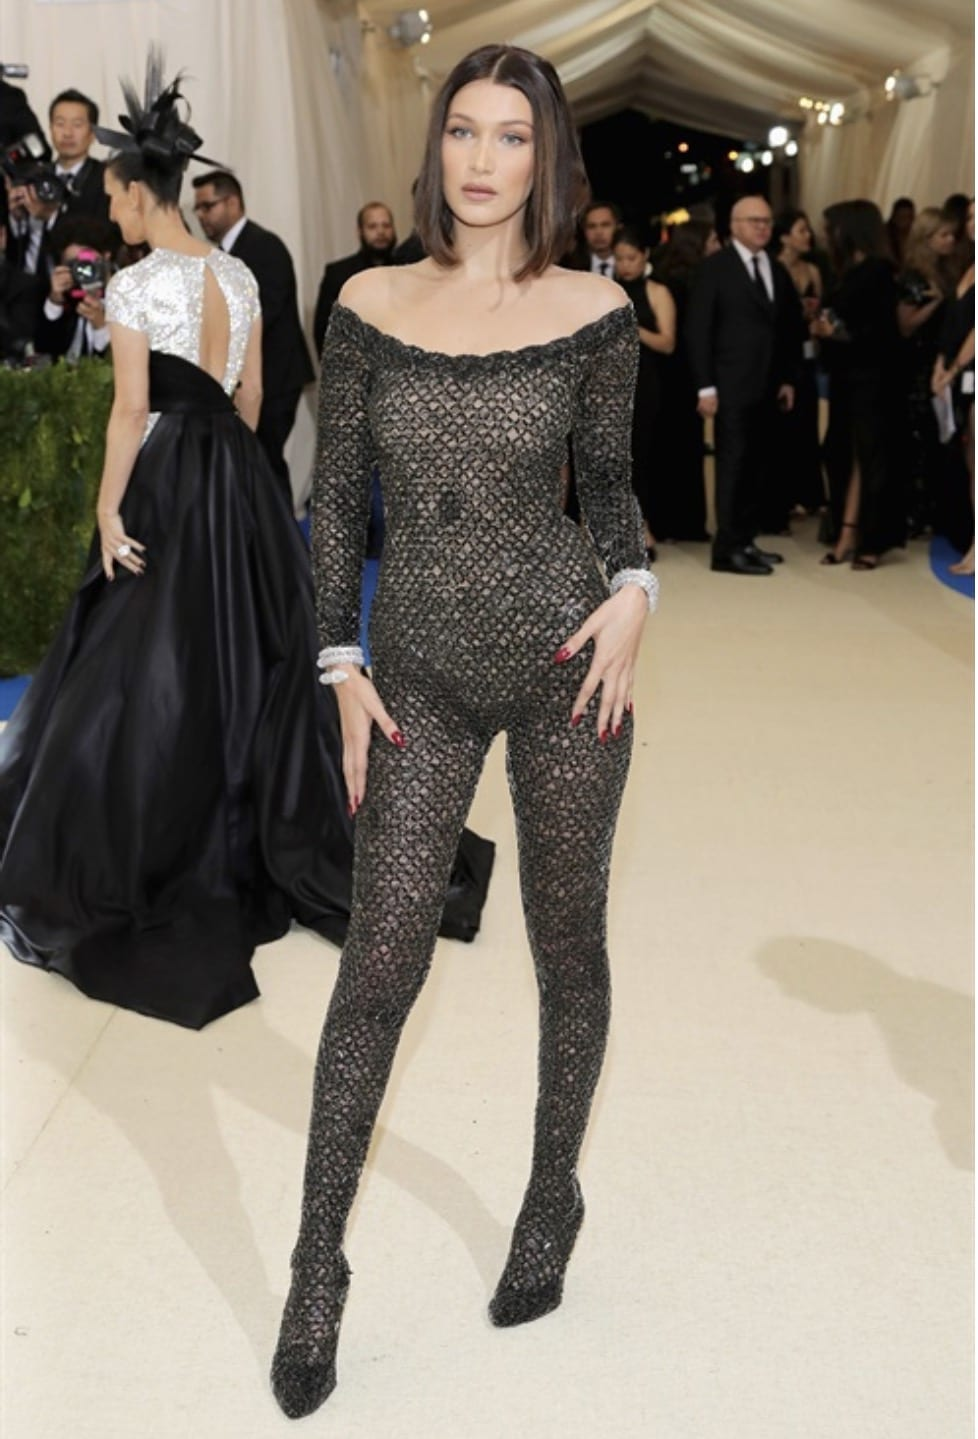 Met Gala 2017, bella hadid met gala 2017, theladycracy.it, elisa bellino, fashion blog, fashion blog 2017, fashion blogger 2017, look da red carpet, come si vestono le star sui red carpet